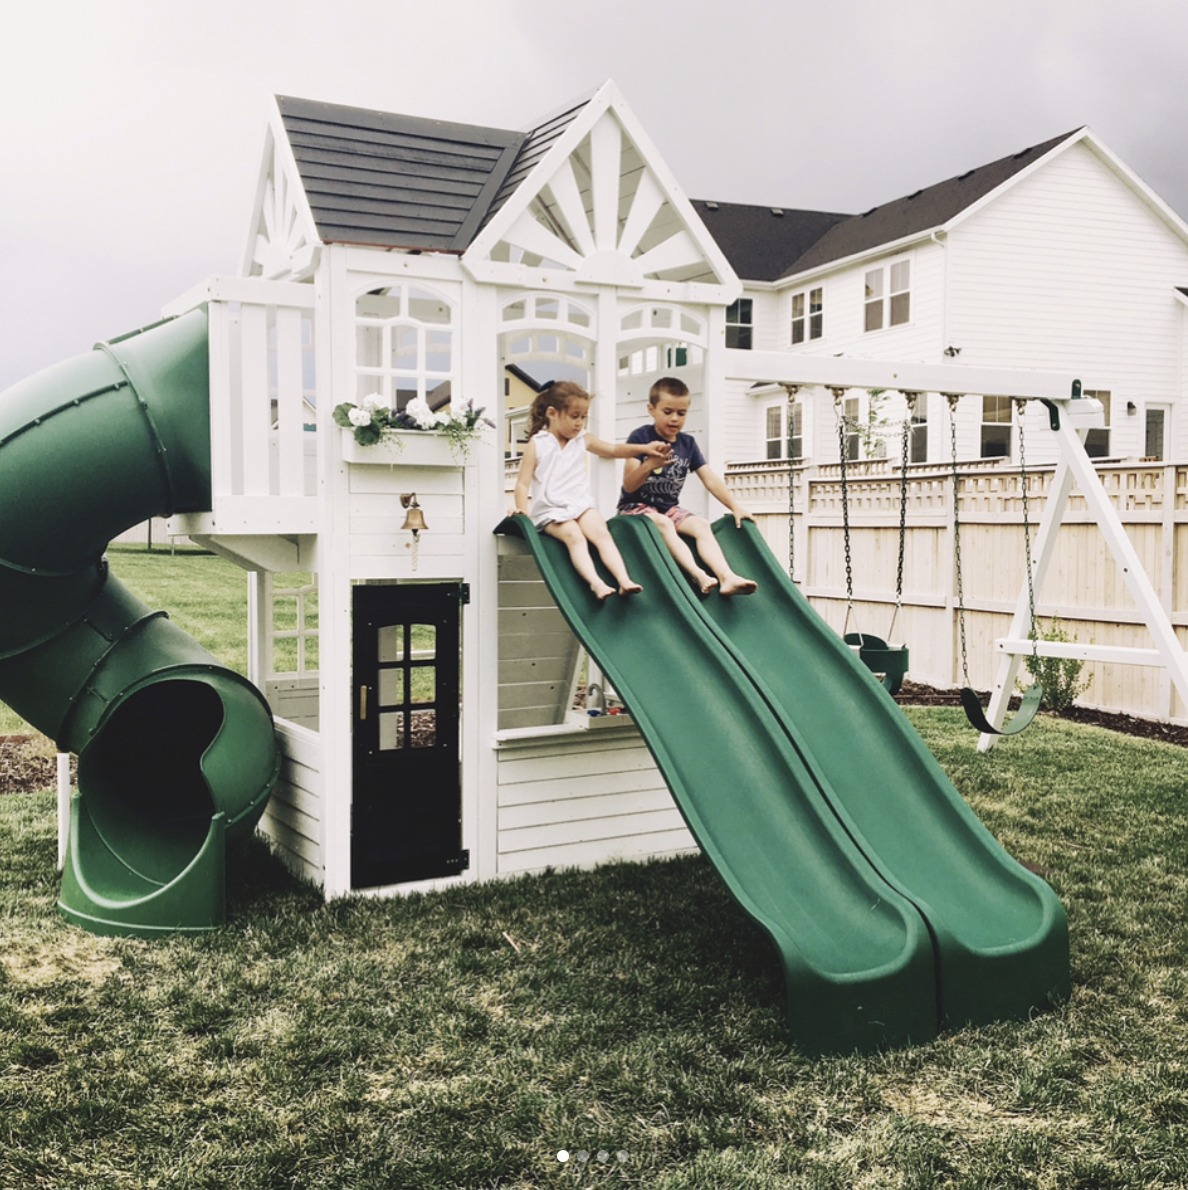 Painted Playhouse Ideas